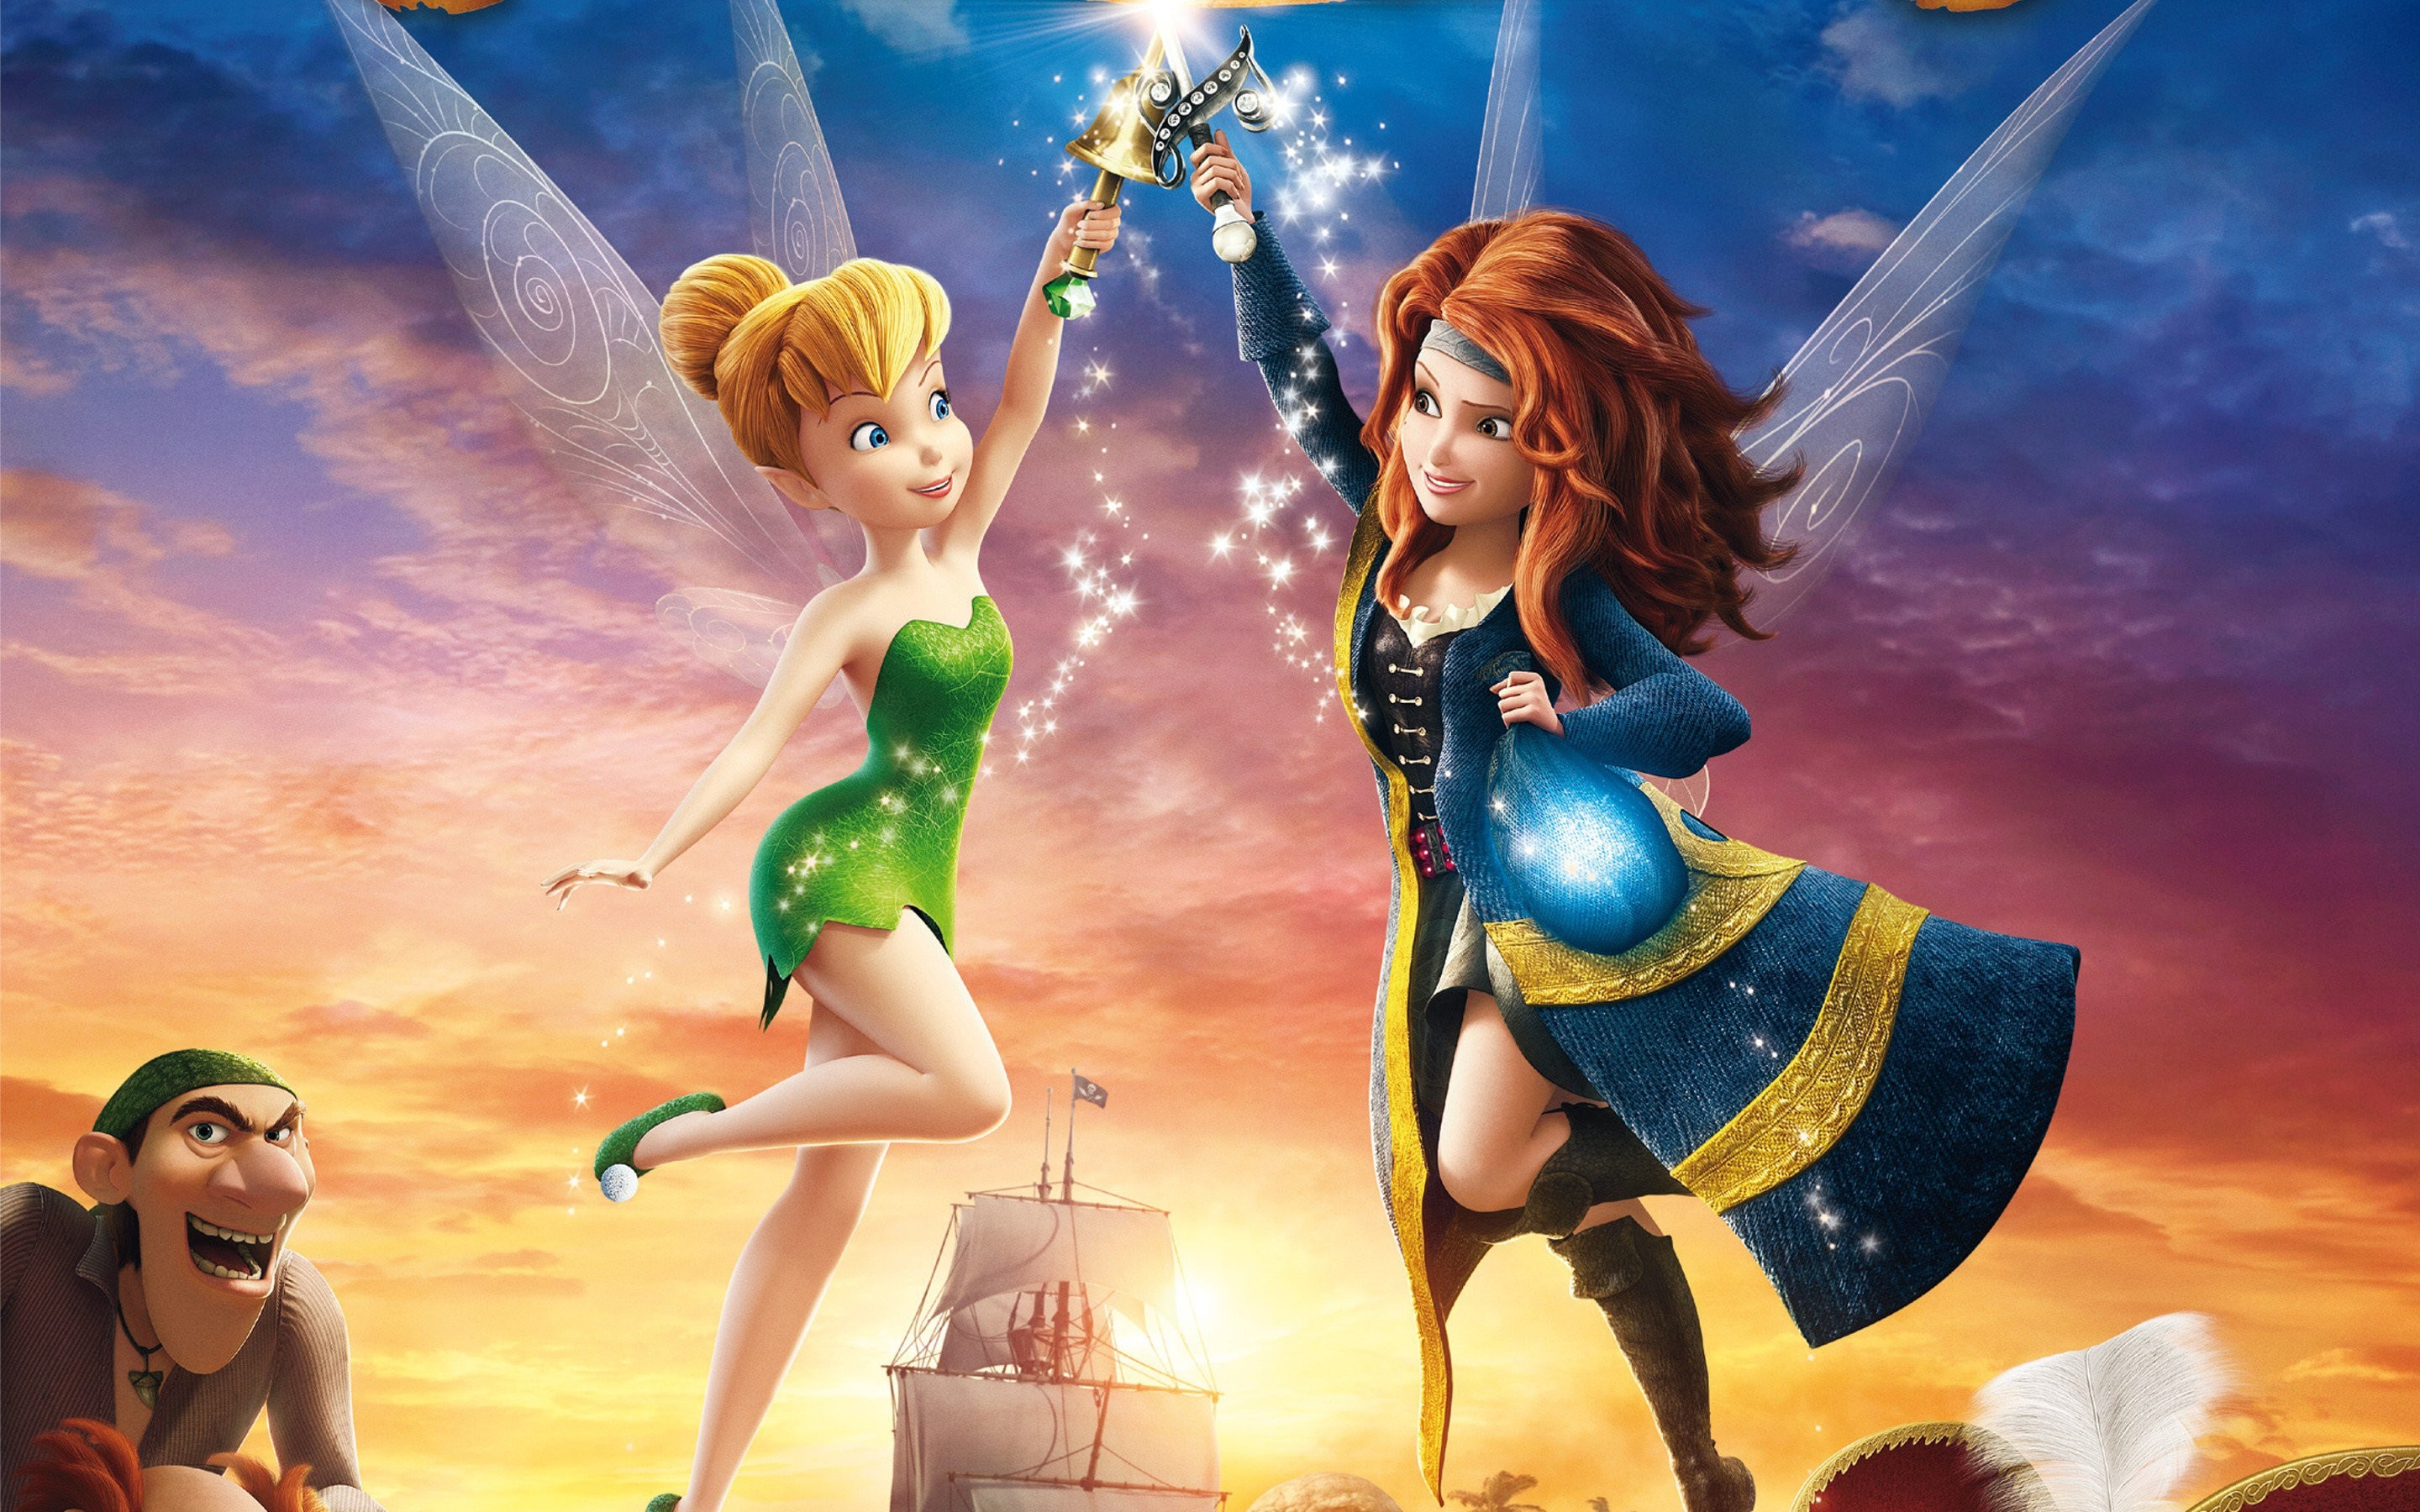 Res: 2880x1800, The Pirate Fairy HD